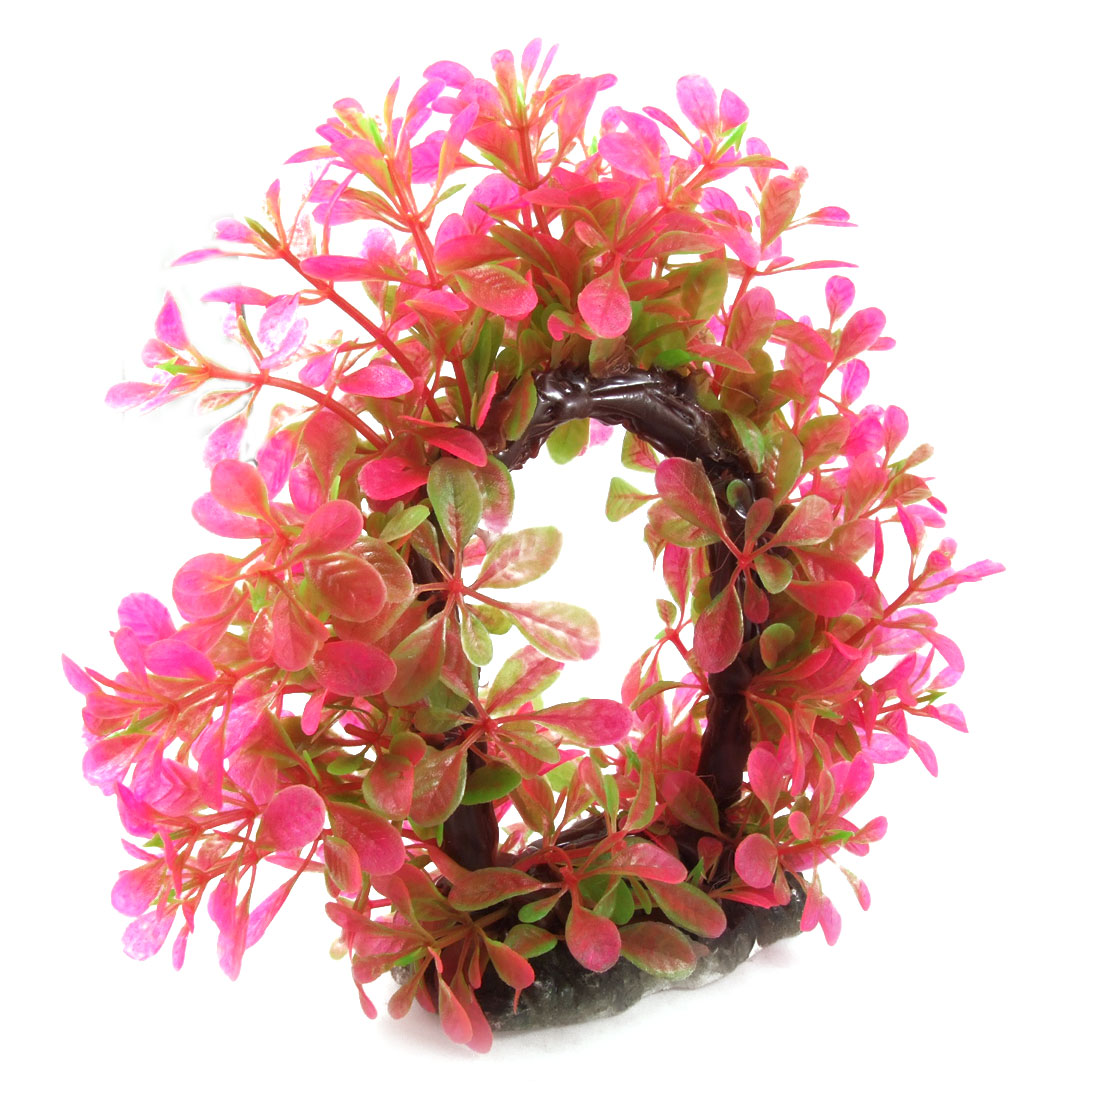 Fuchsia Green Aquarium Fish Tank Curve Design Aquatic Plastic Plant Ornament 6""